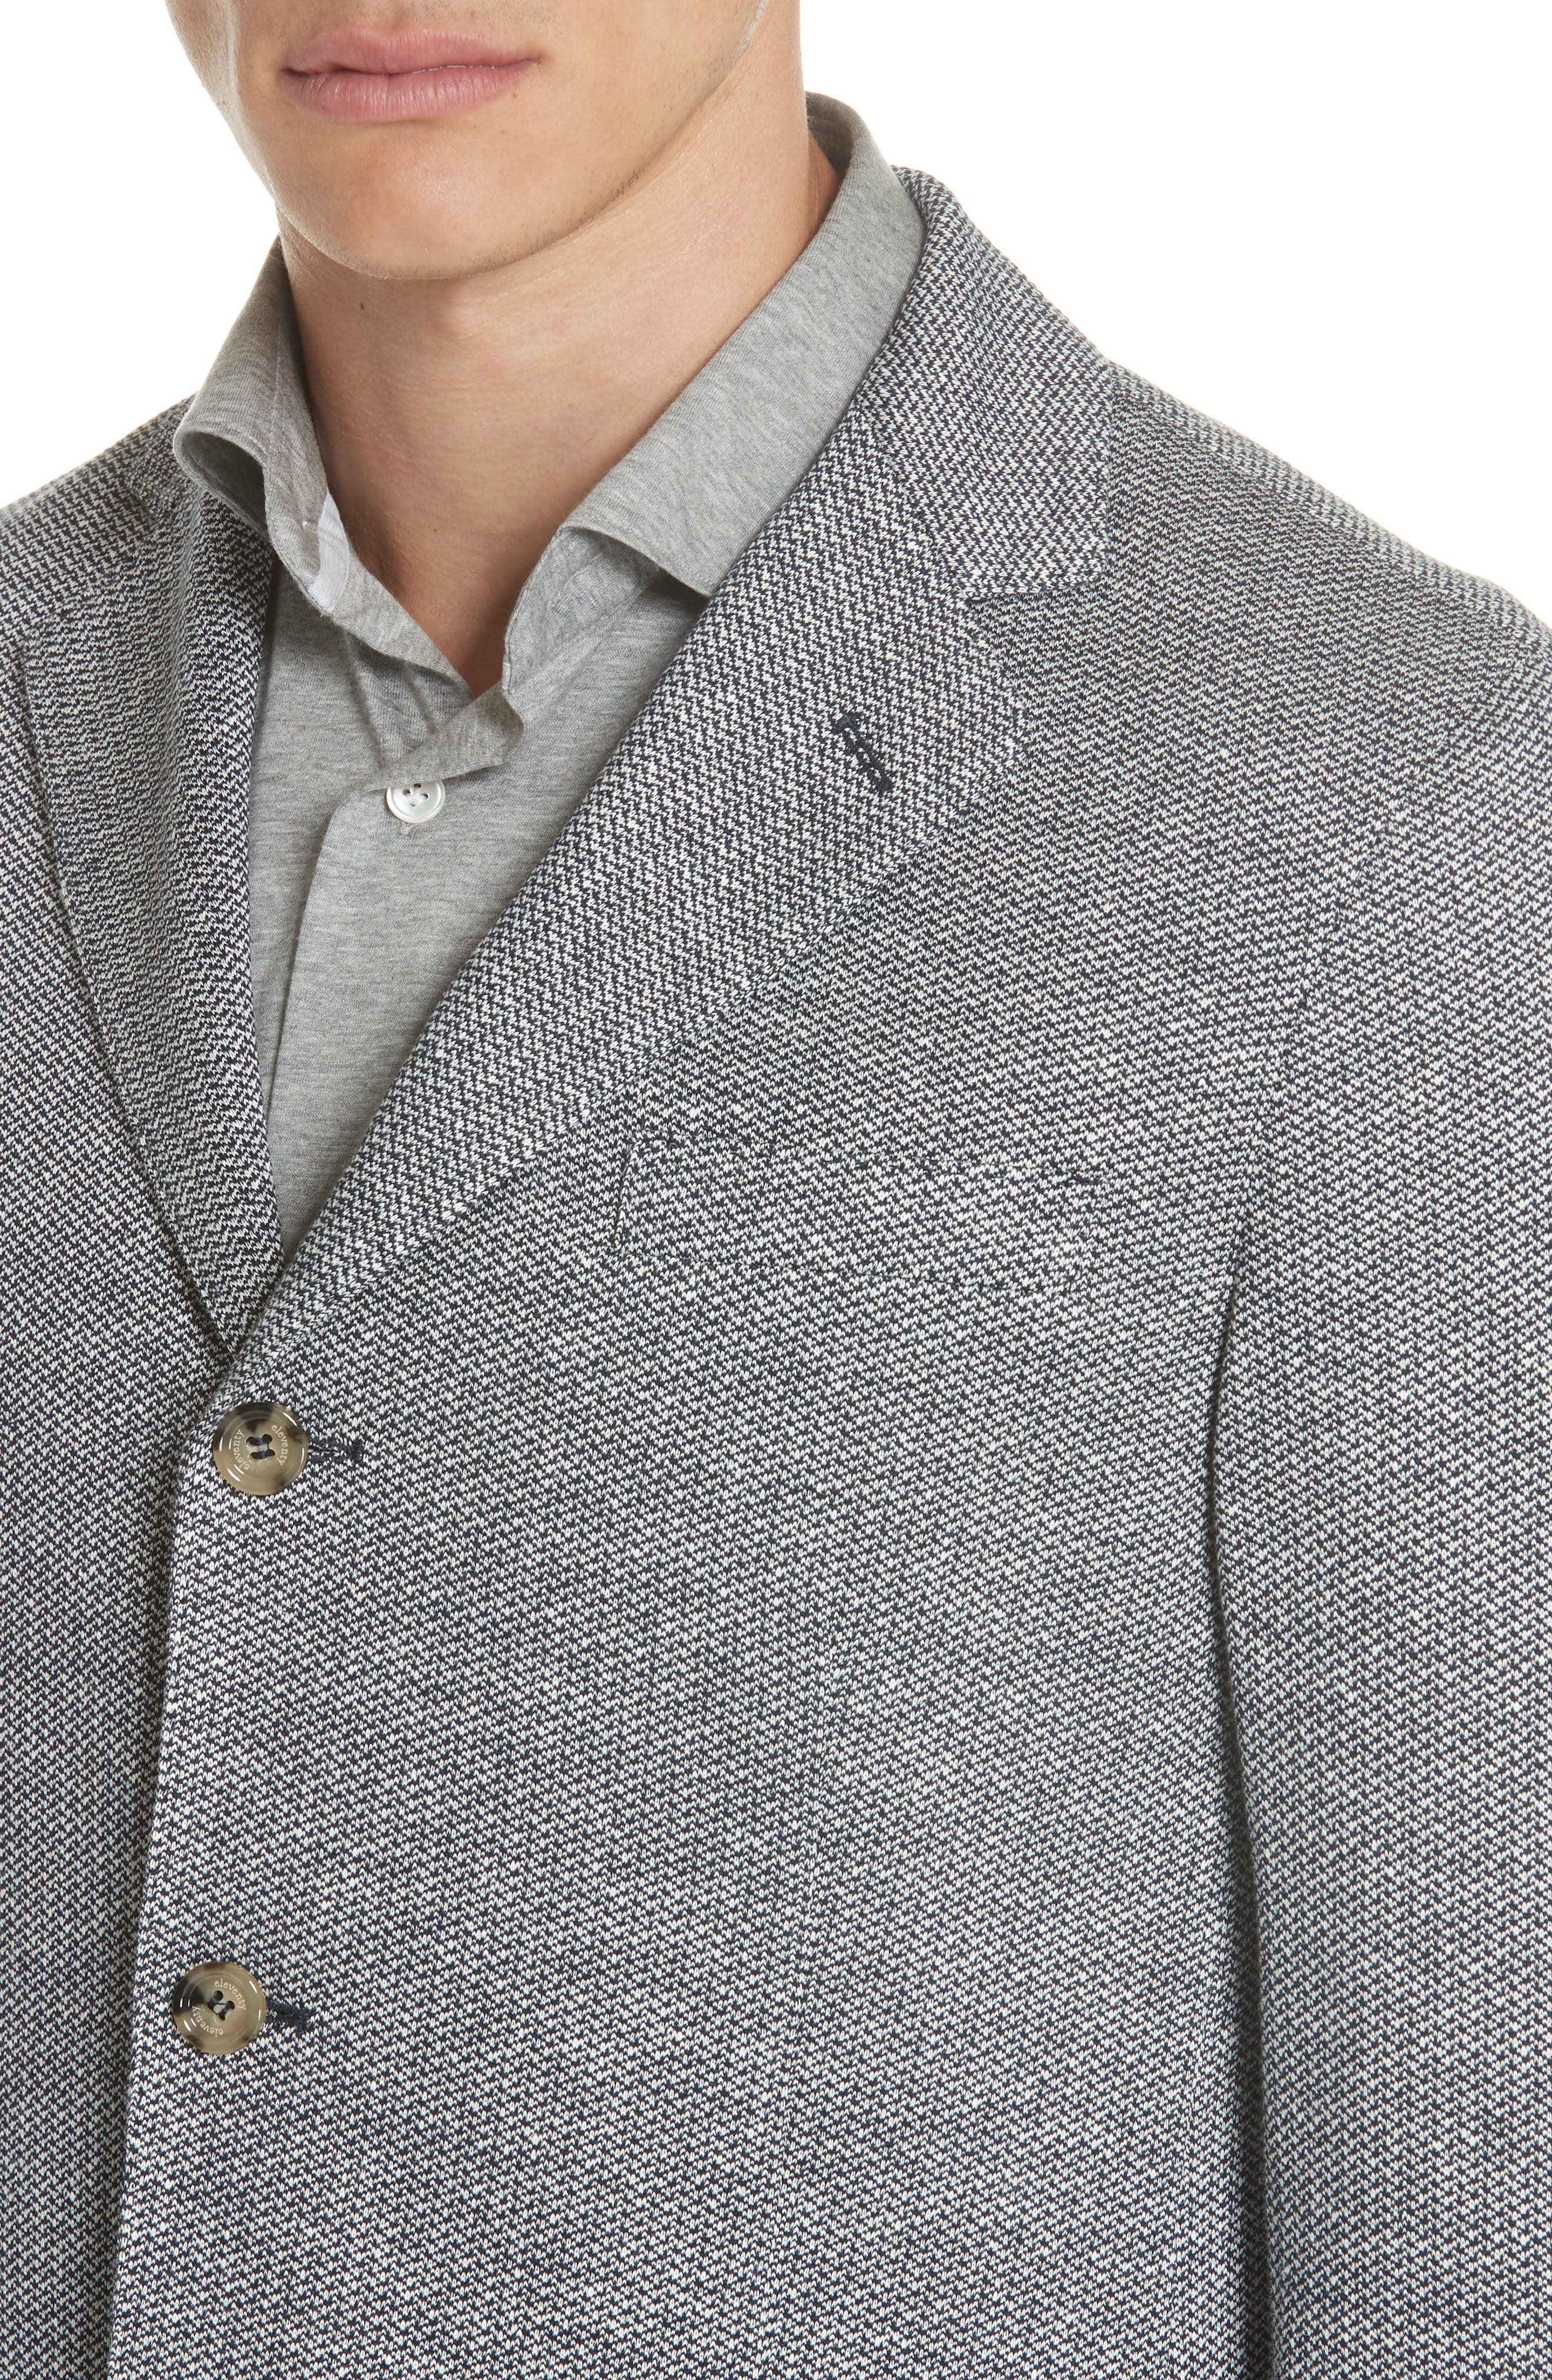 Trim Fit Linen & Cotton Blazer,                             Alternate thumbnail 4, color,                             Navy